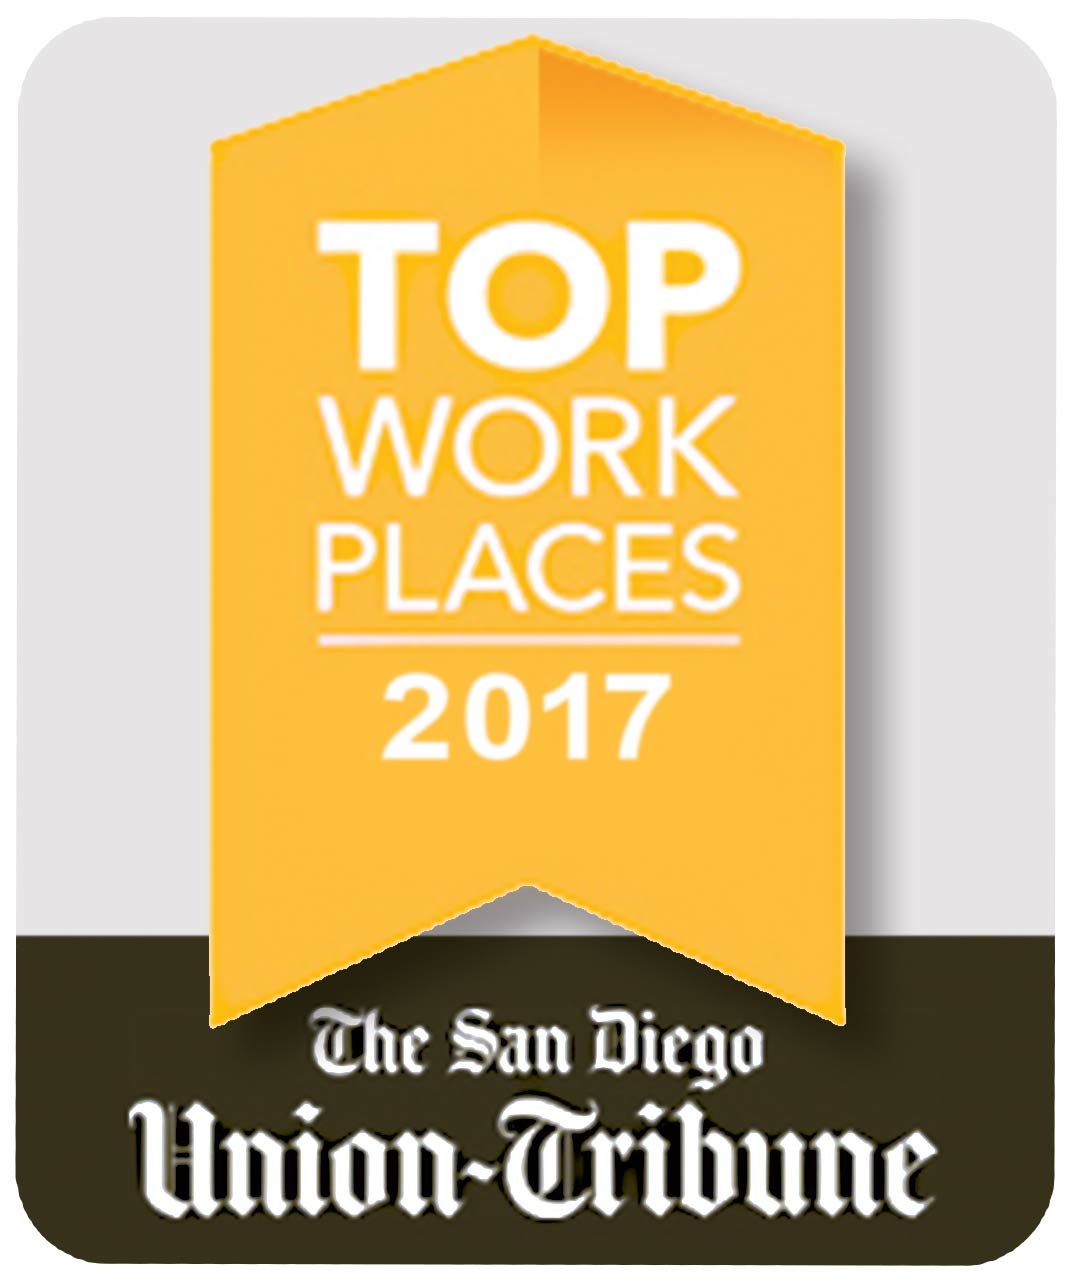 Image of The San Diego Union Tribune 2017 Top Work Places logo.